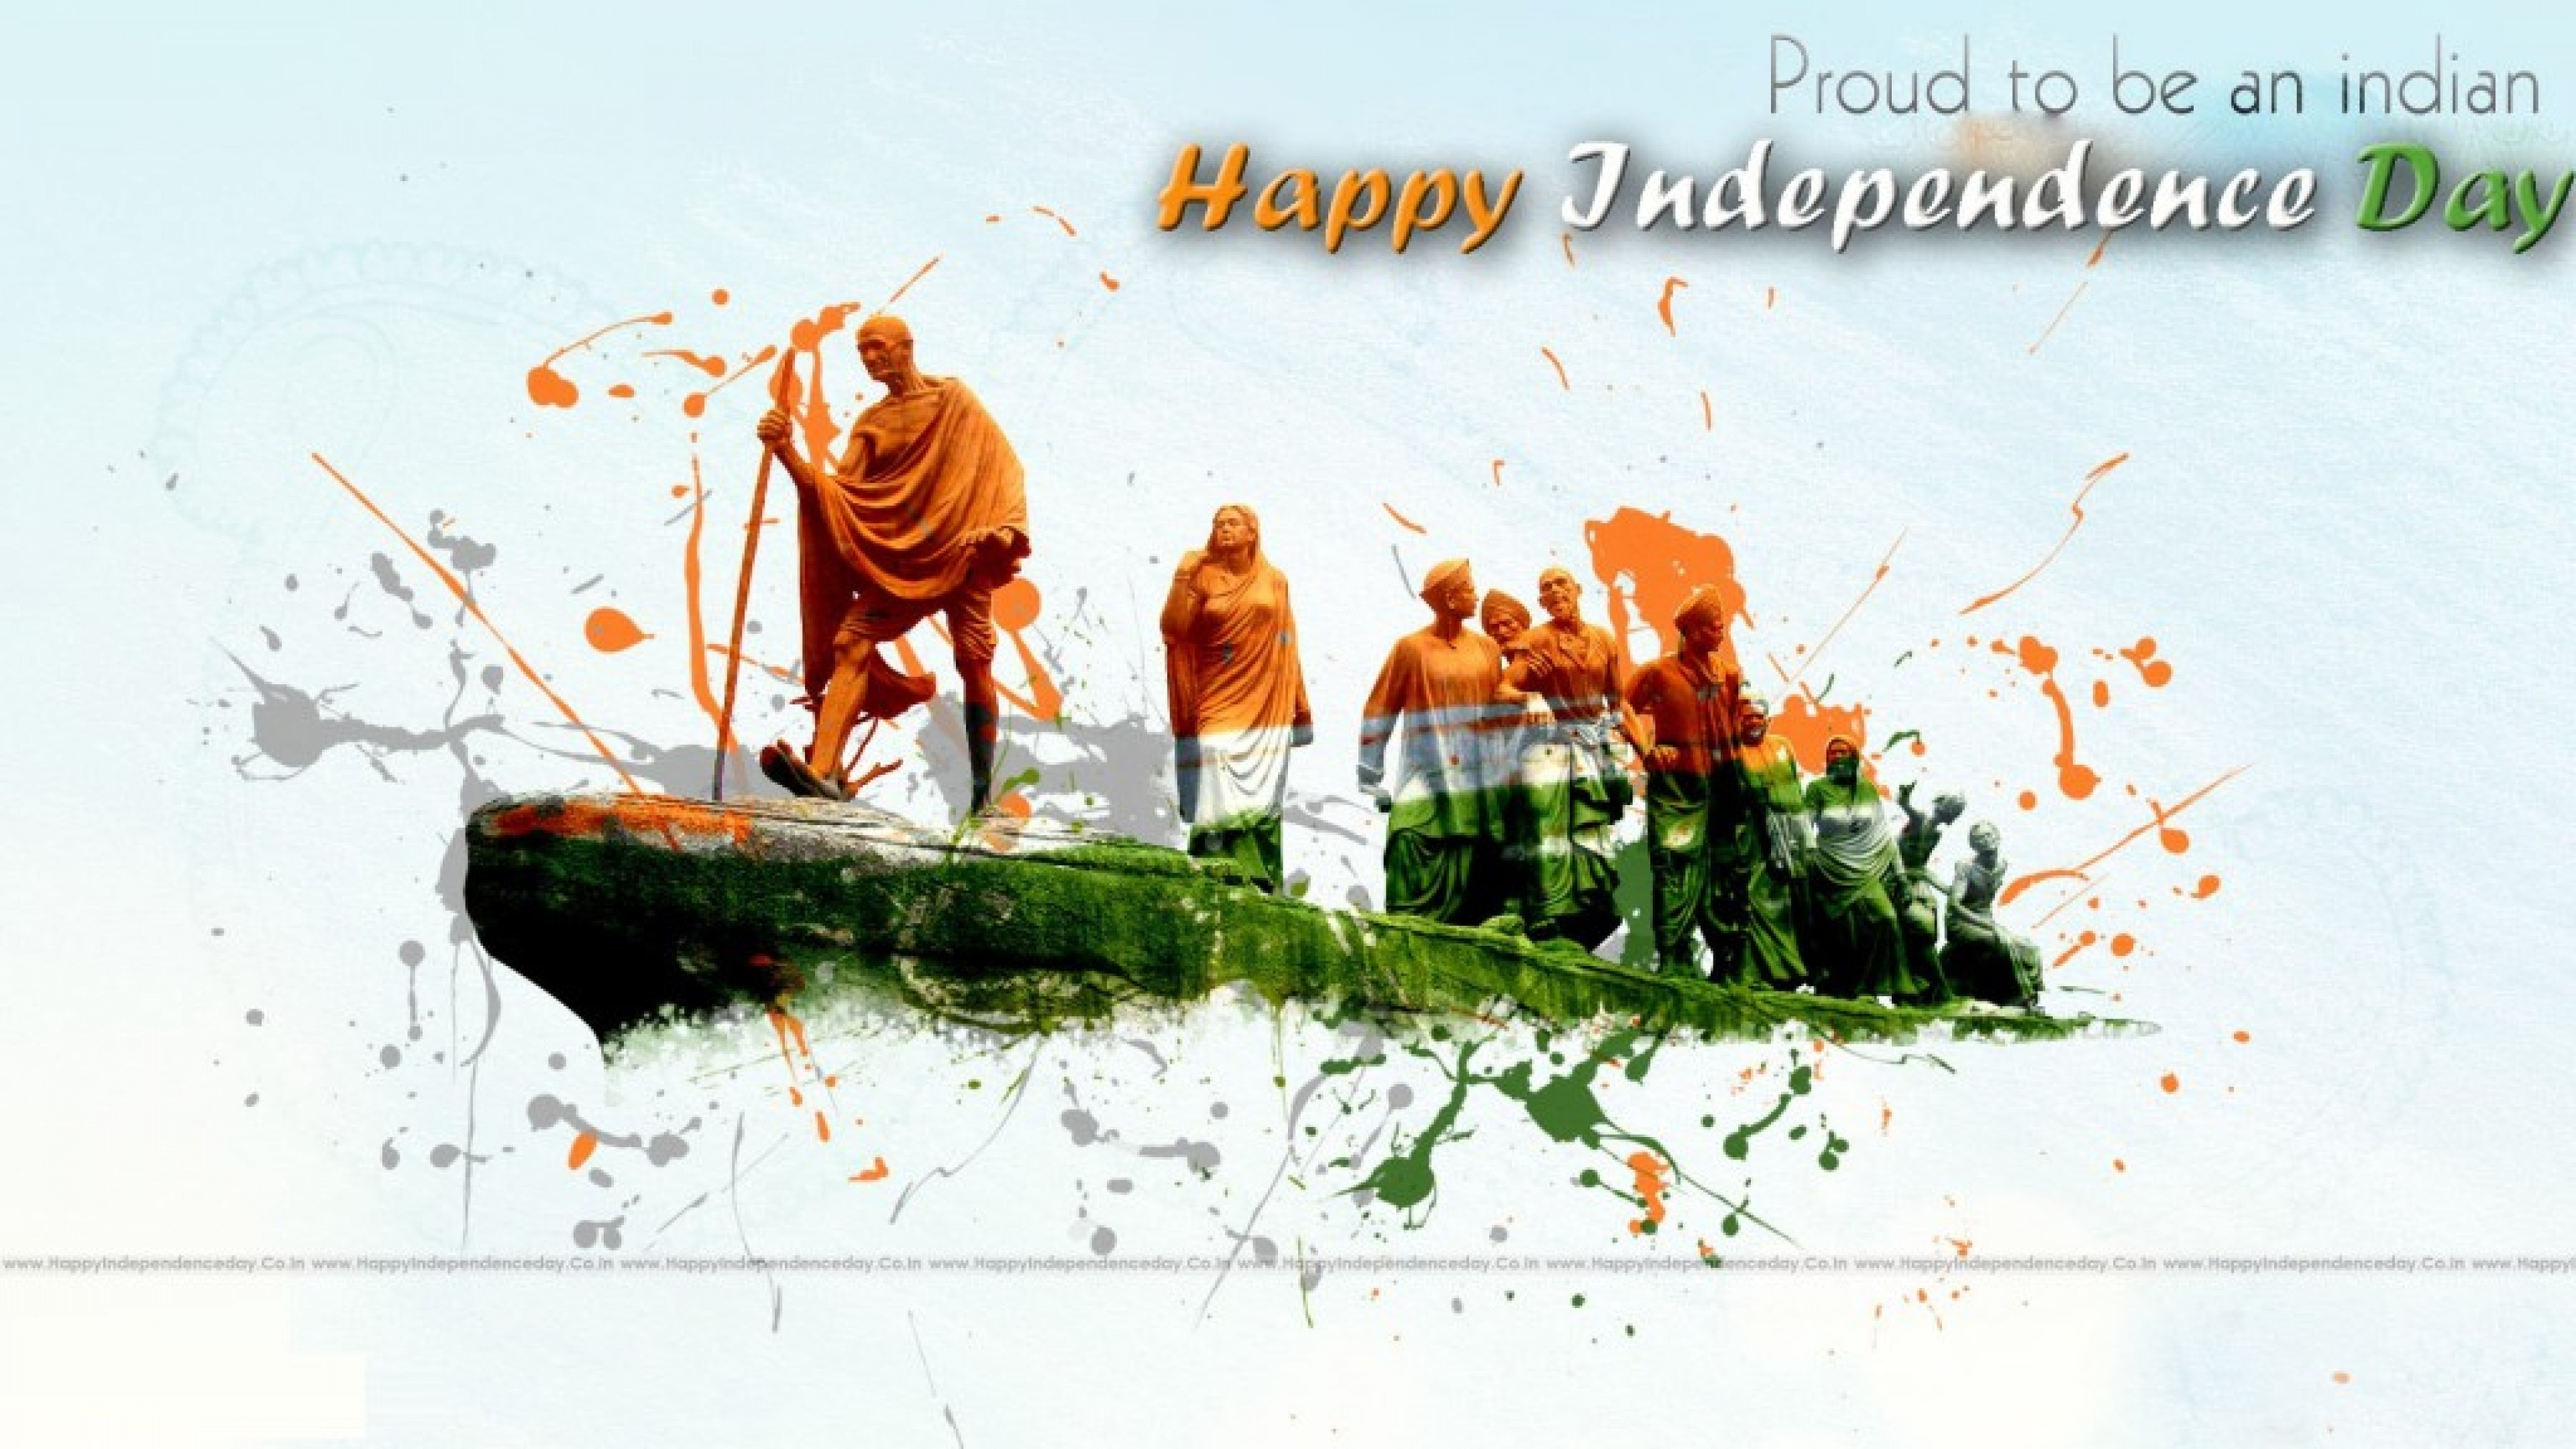 3840x2160 Indian Flag Wallpaper Animation for India Independence Day with